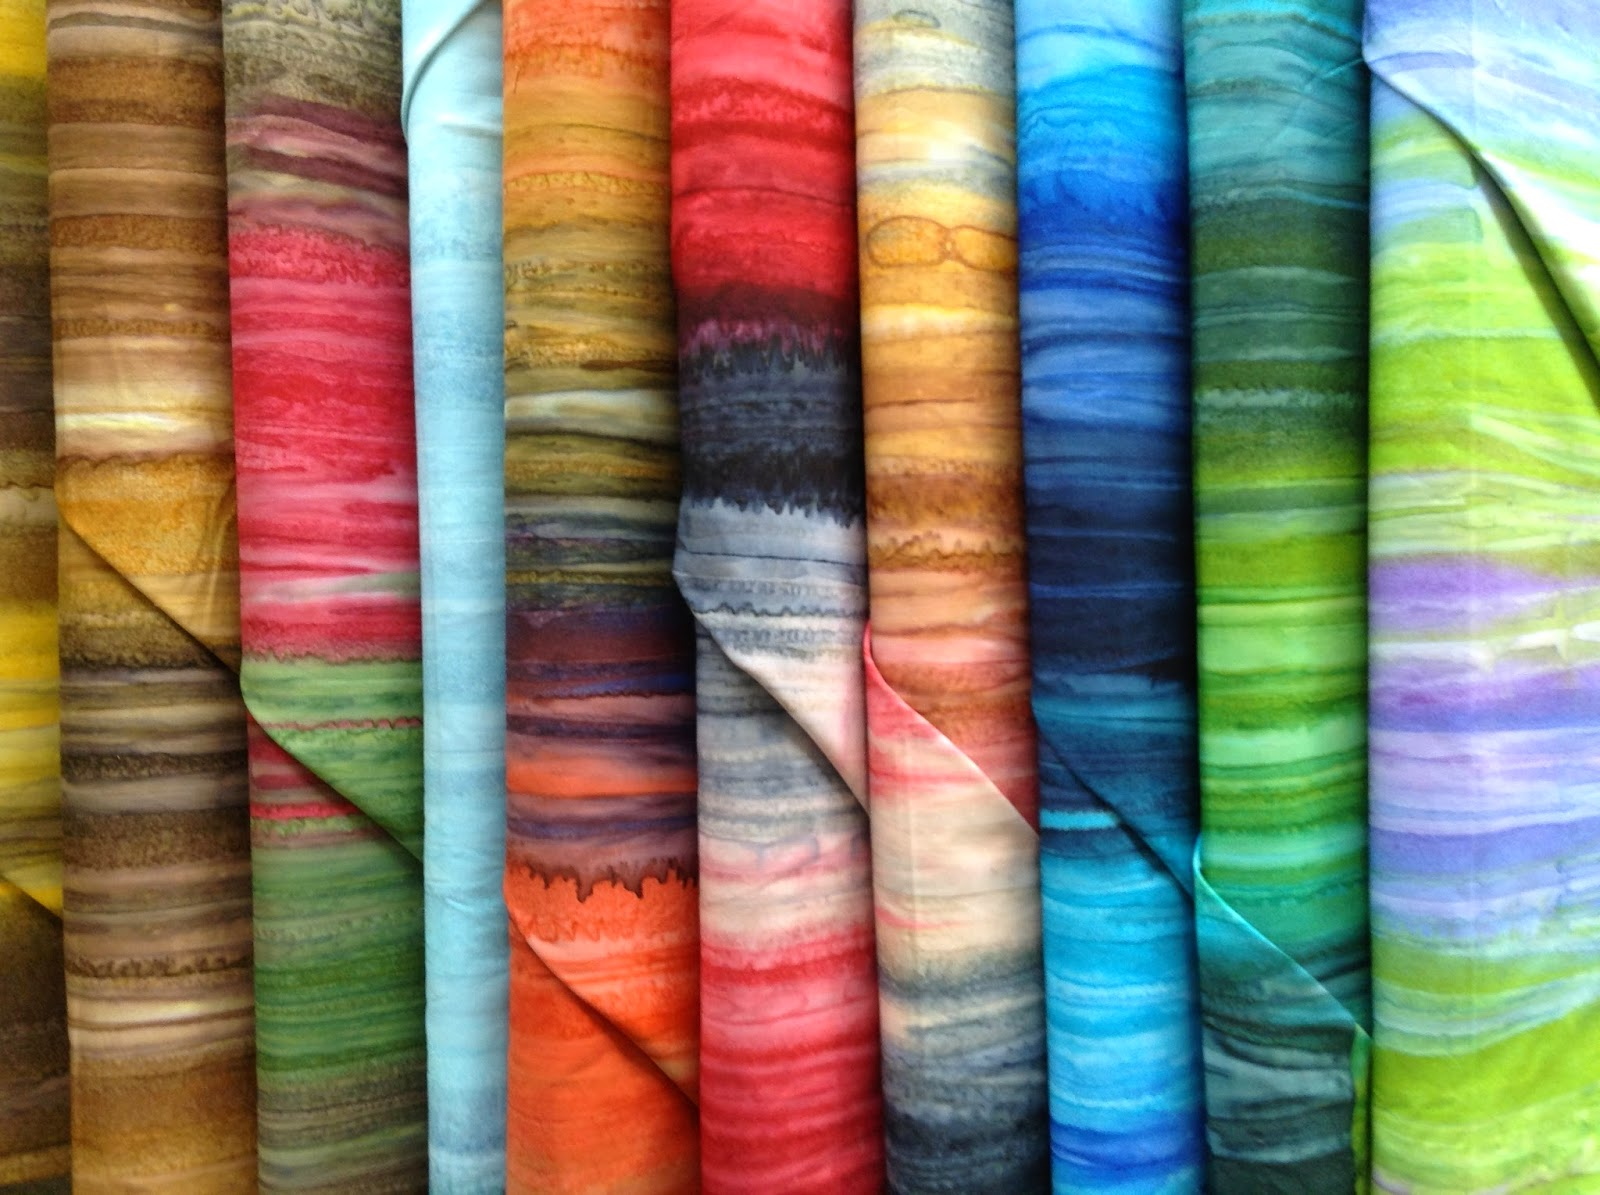 Bargain Box Ipswich Bargain Box Fabrics has been established in Ipswich for 24 years and is a family owned business. We have plenty of off-street customer parking and.